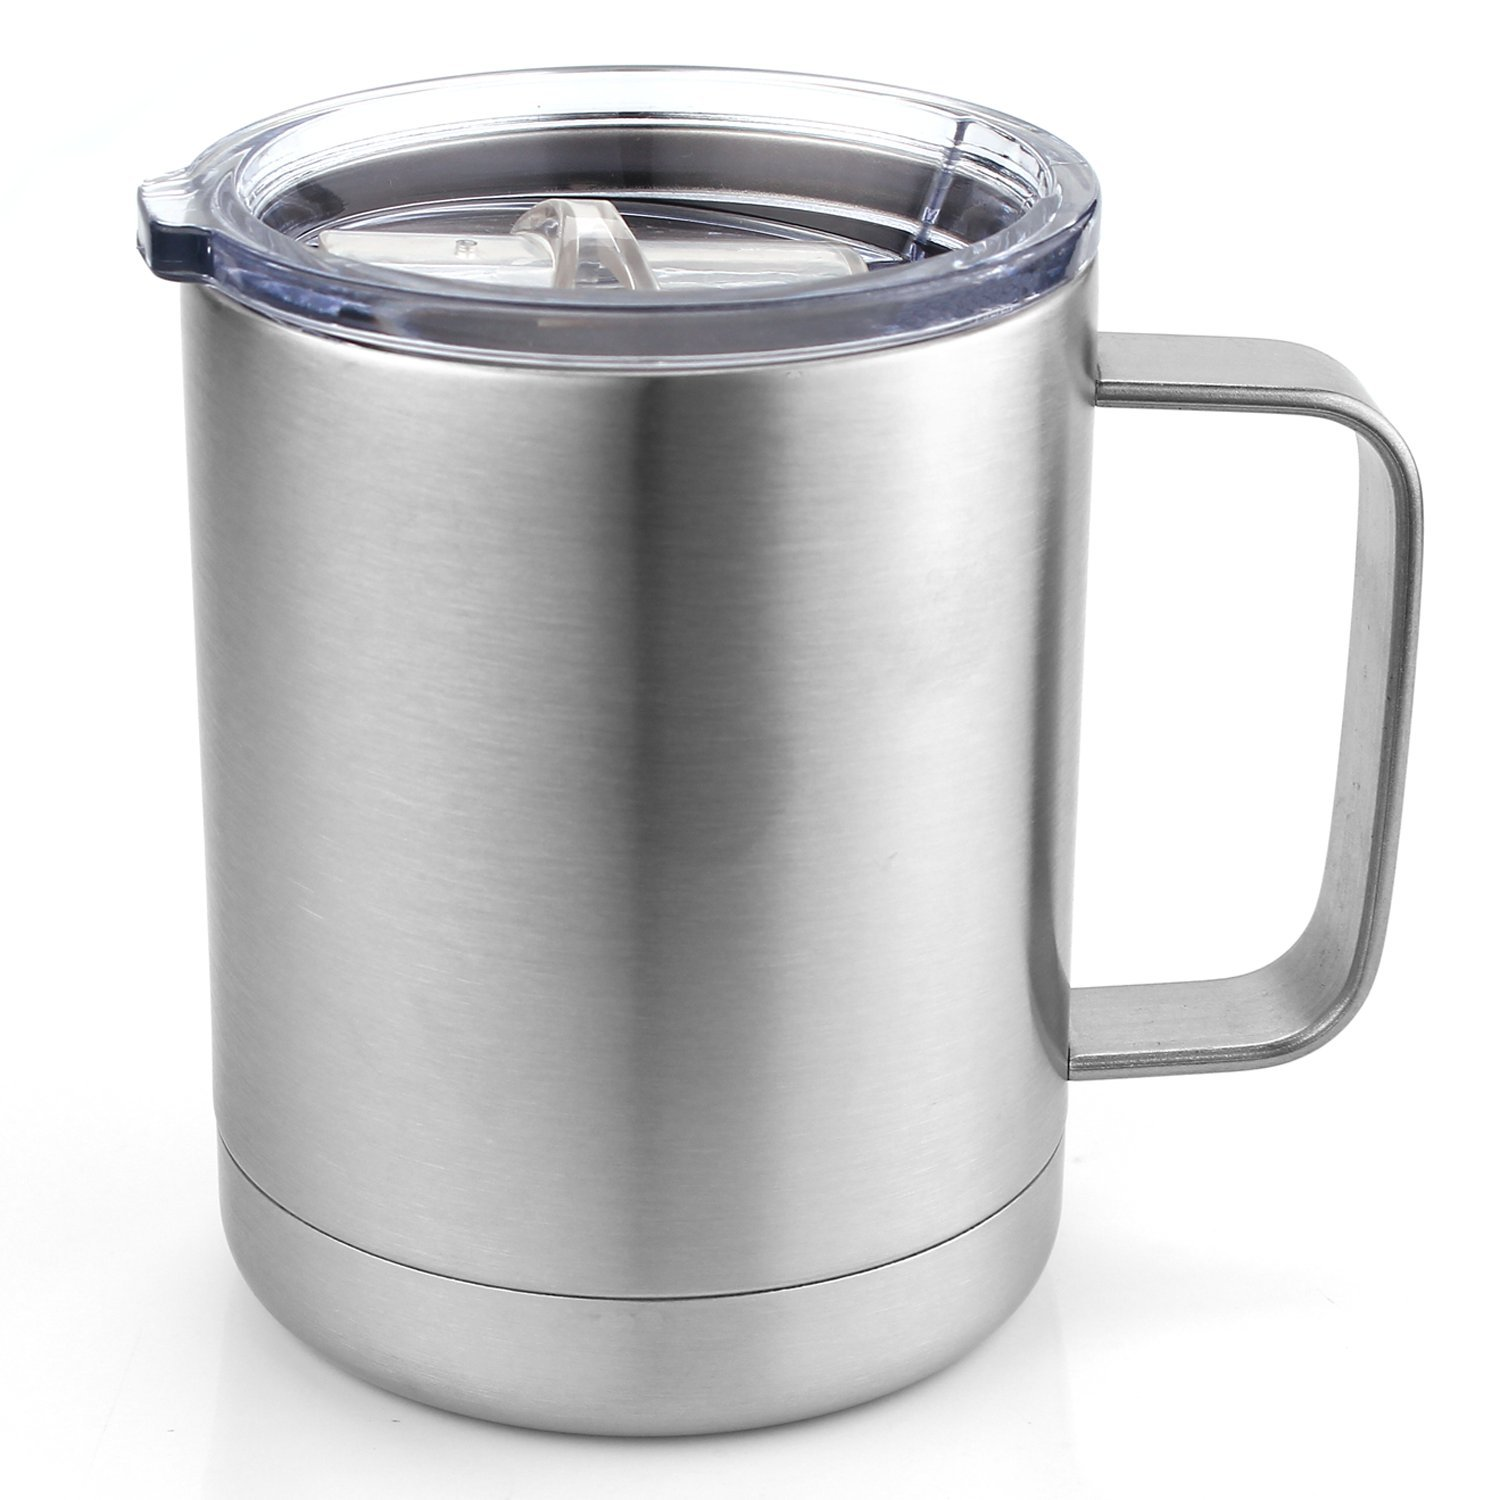 Coffee Mug - Stainless Steel Double Wall Insulated Tumbler With lids